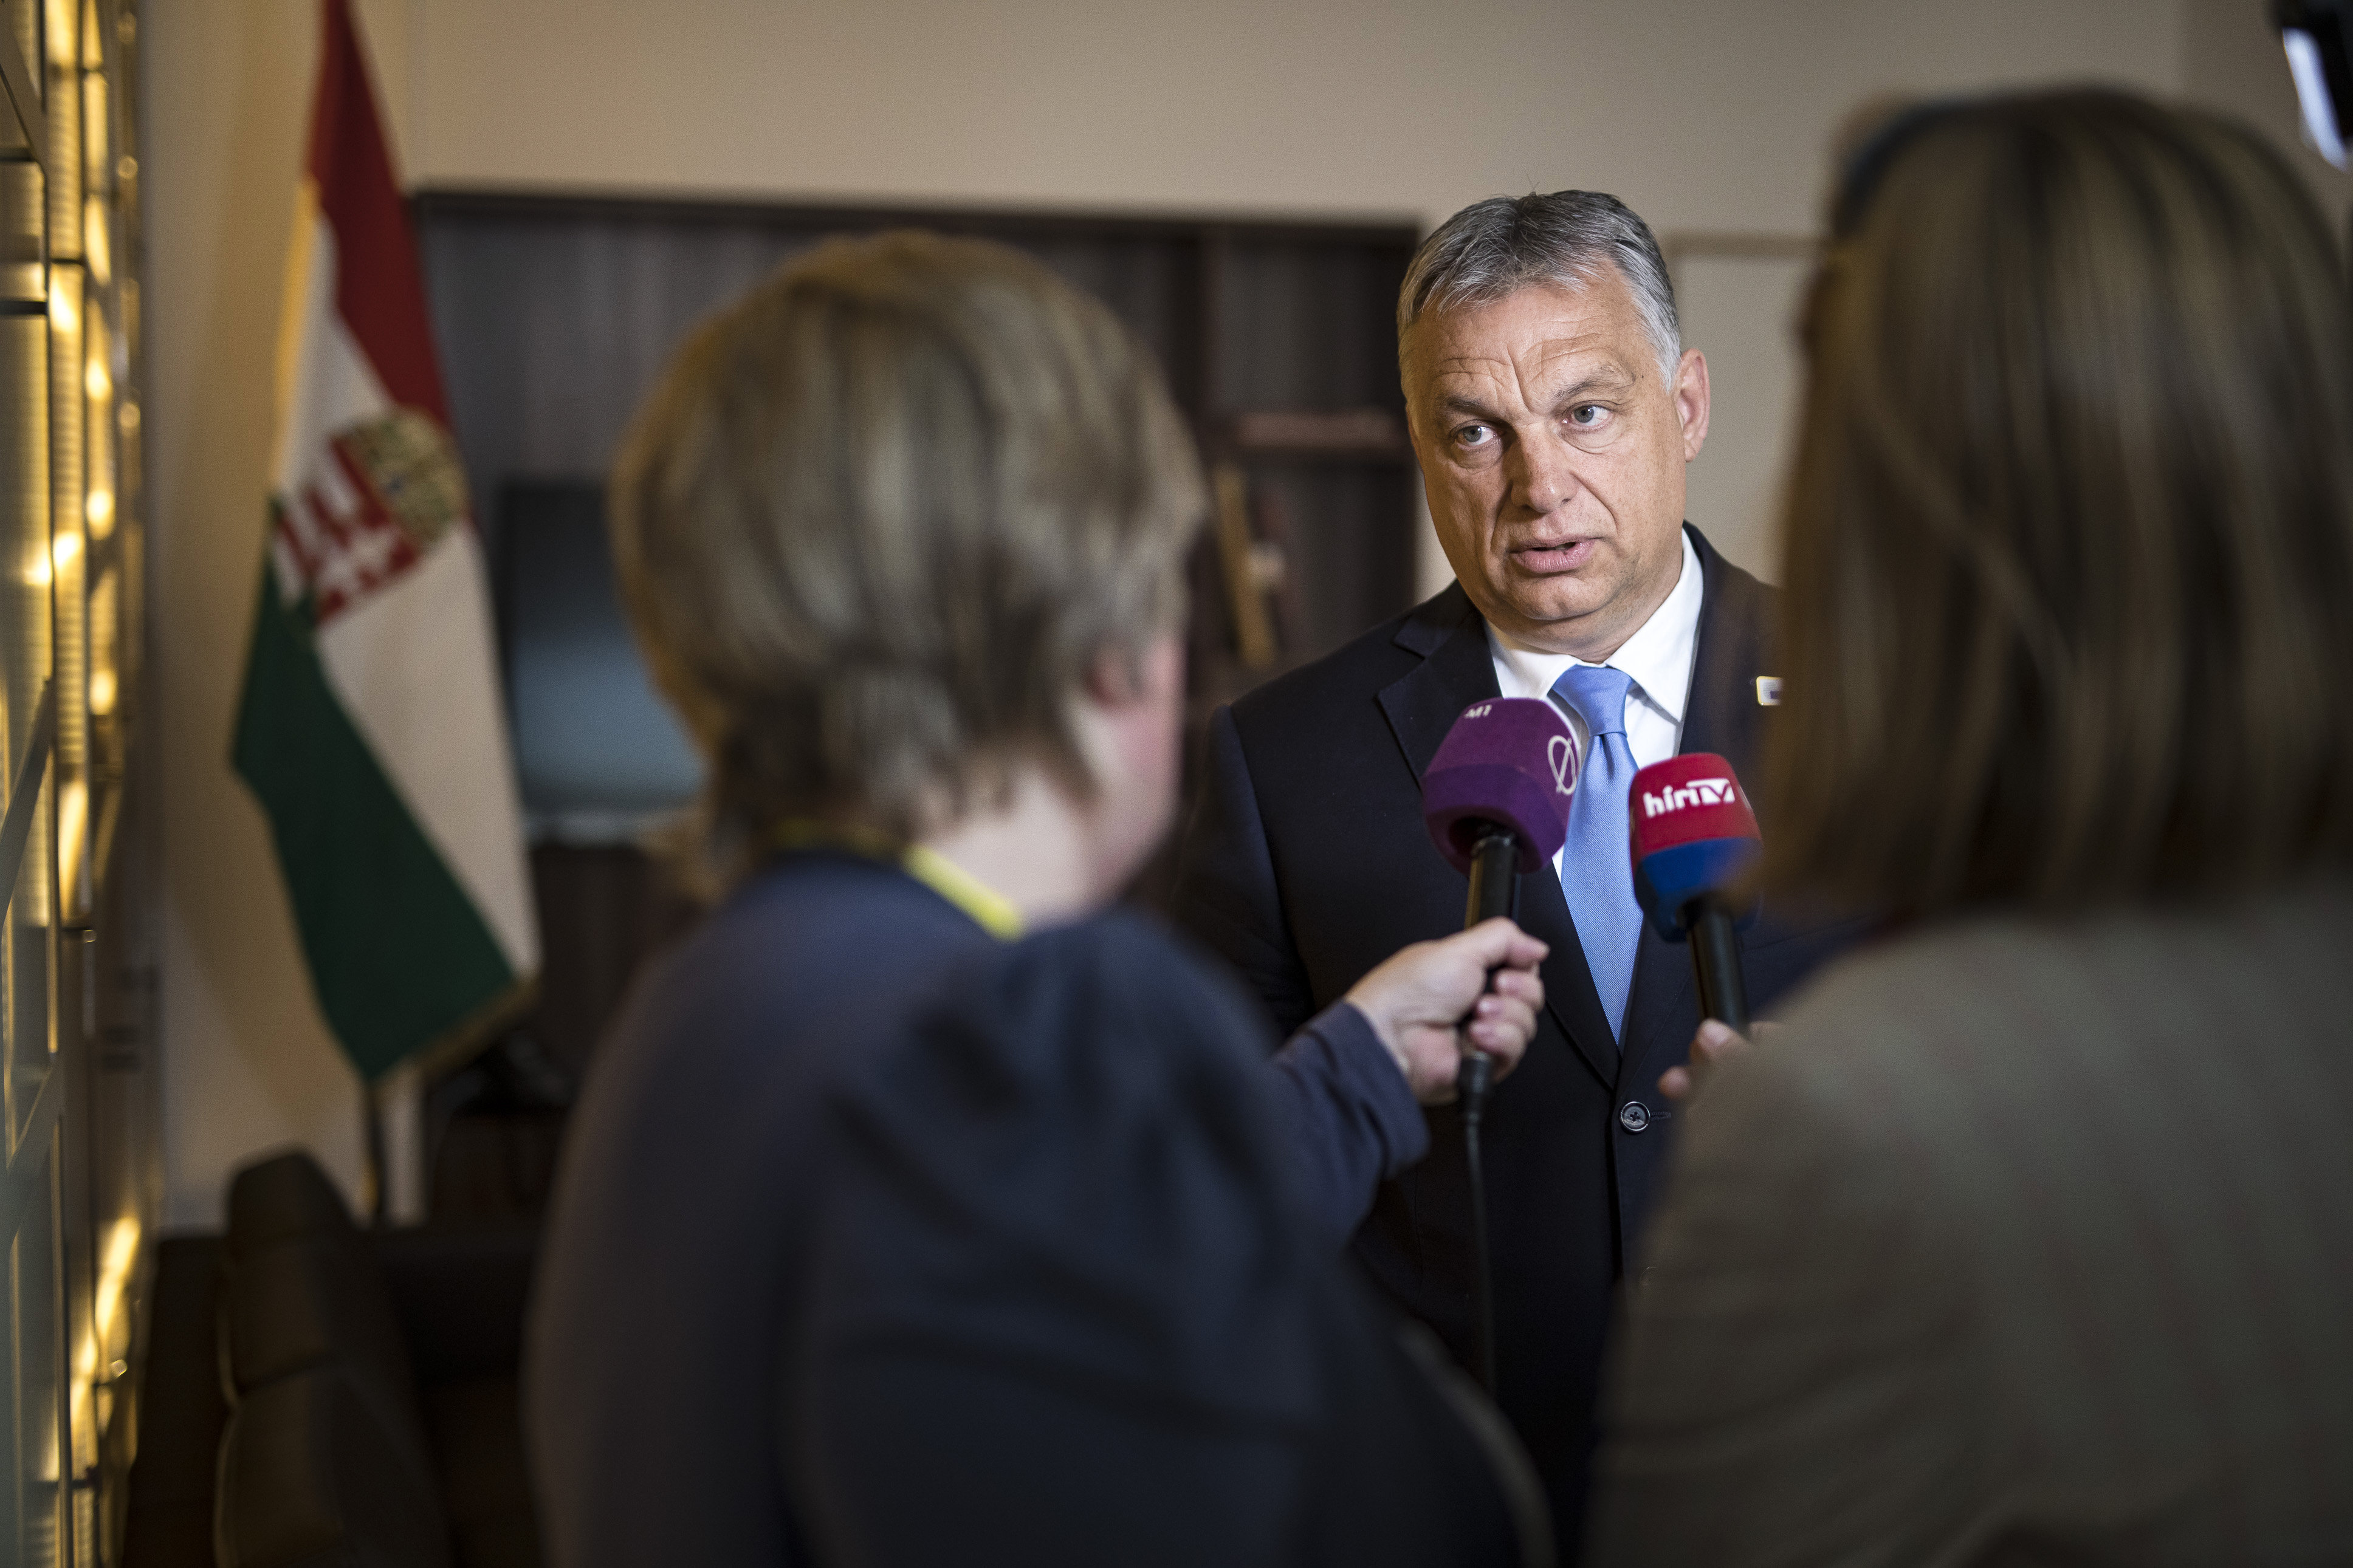 Orbán in Brussels: Weber, Timmermans 'have failed'